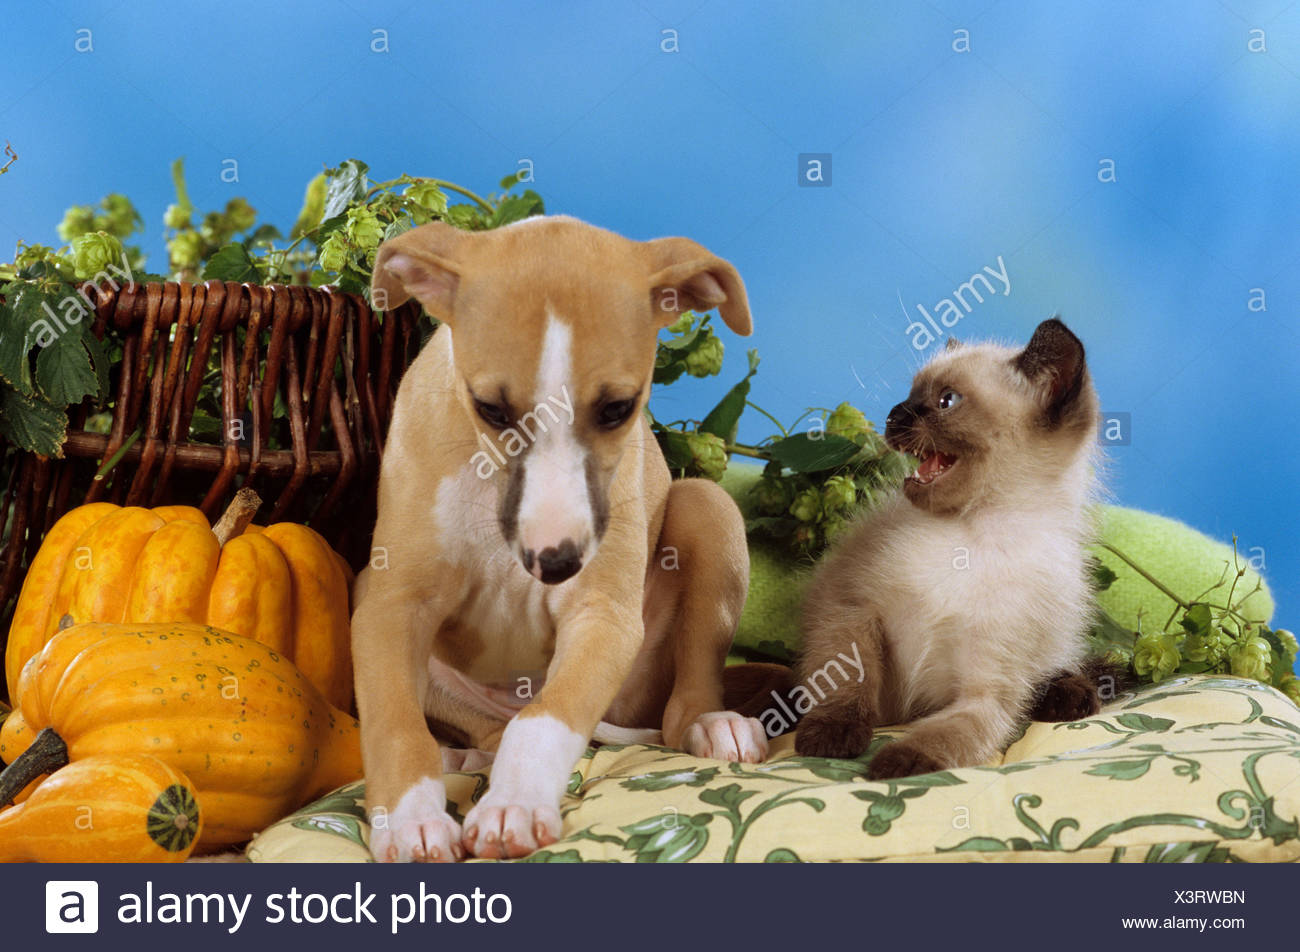 young Siamese cat snarling at a Whippet dog - puppy Stock Photo